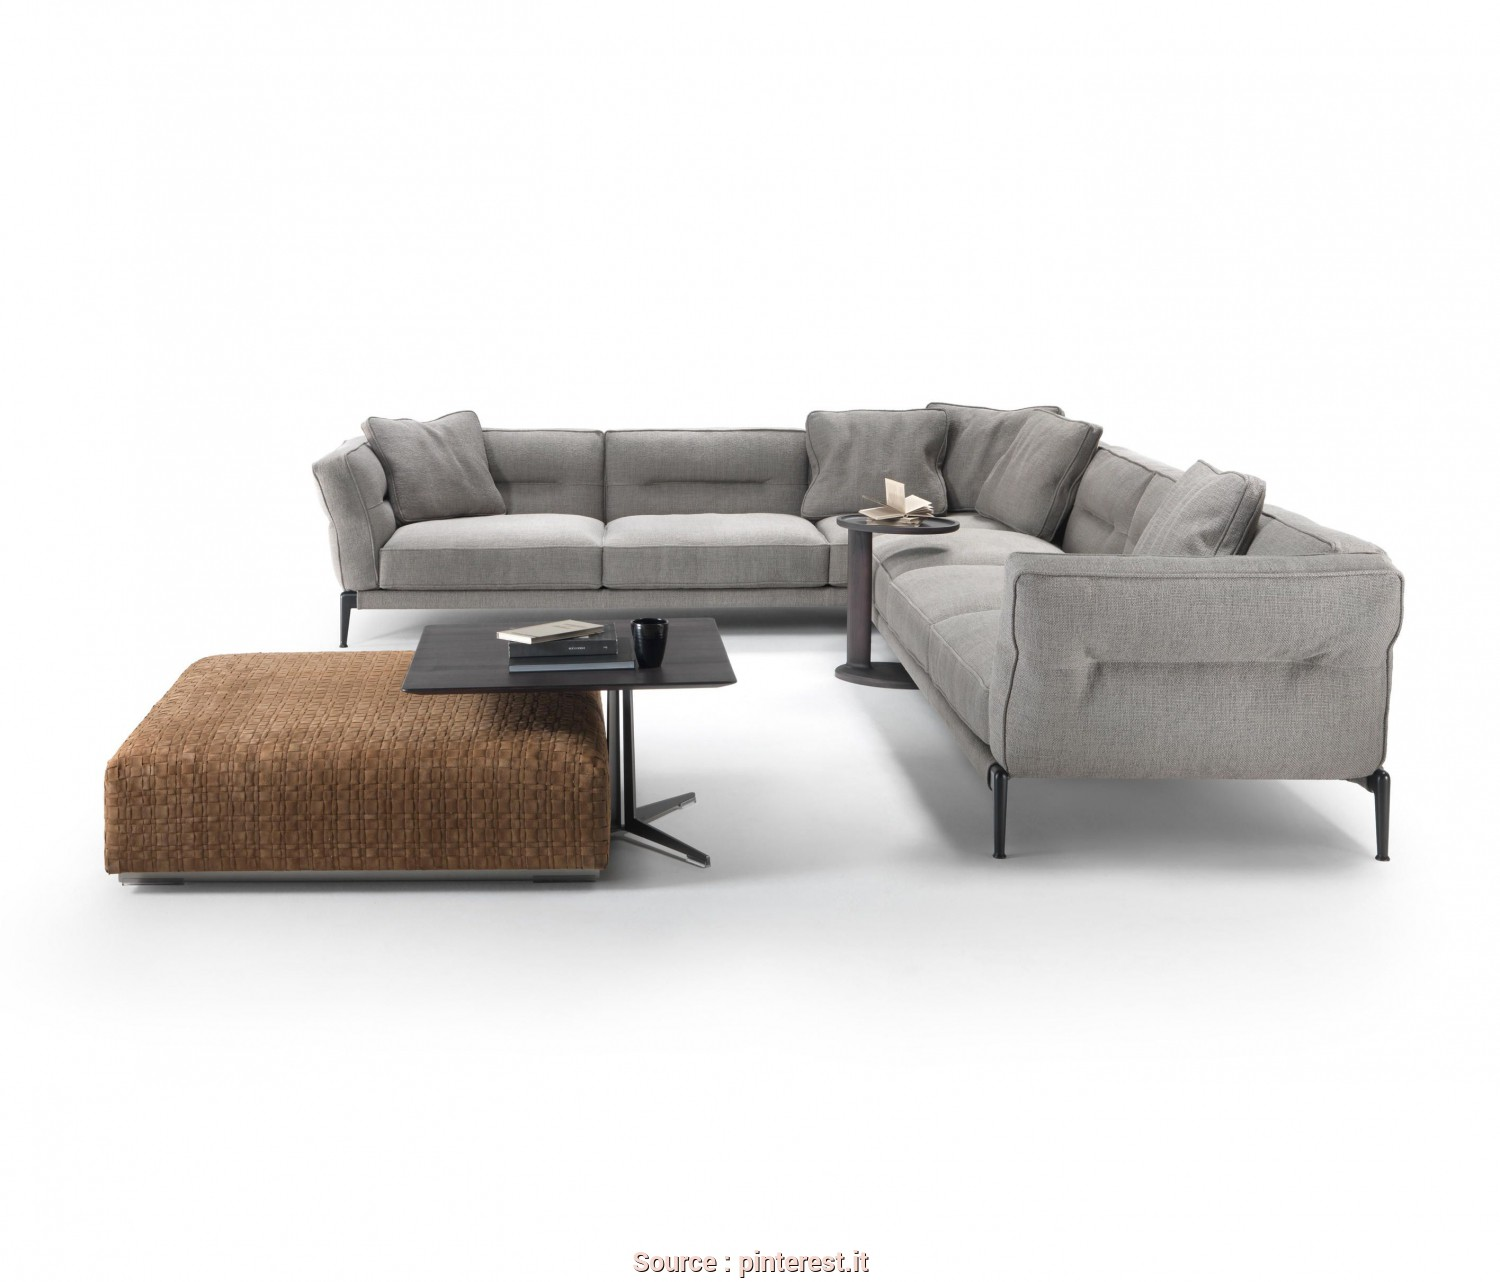 Adda Divano Componibile, Bello ADDA, Designer Sofas From Flexform, All Information, High-Resolution Images, CADs, Catalogues, Contact Information, Find Your Nearest